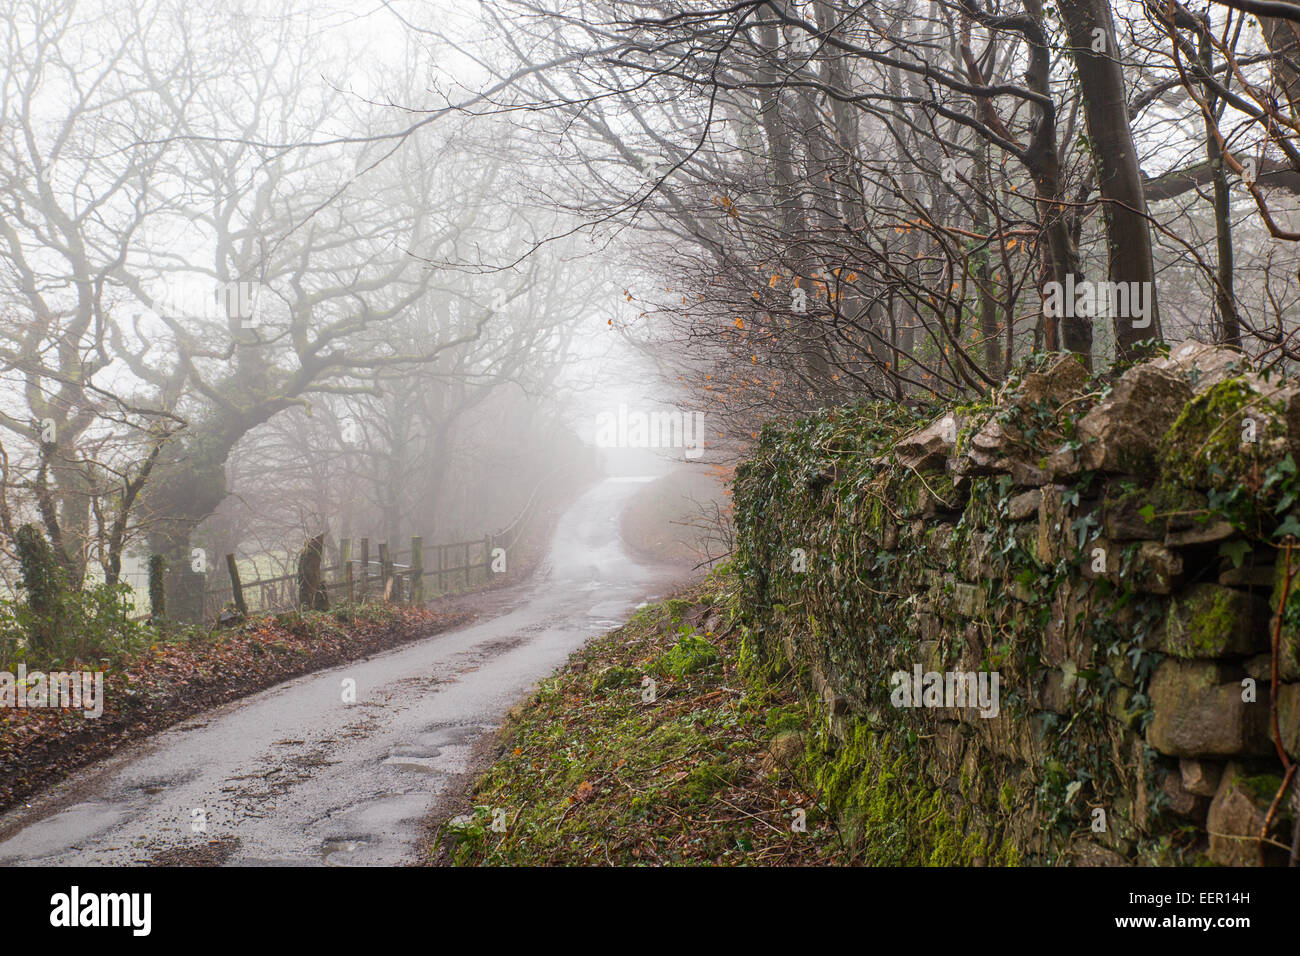 Cardiff, Wales, UK. 21st Jan, 2015. UK Weather: Cardiff was wet and cold this morning. After a few flurries of snow - Stock Image